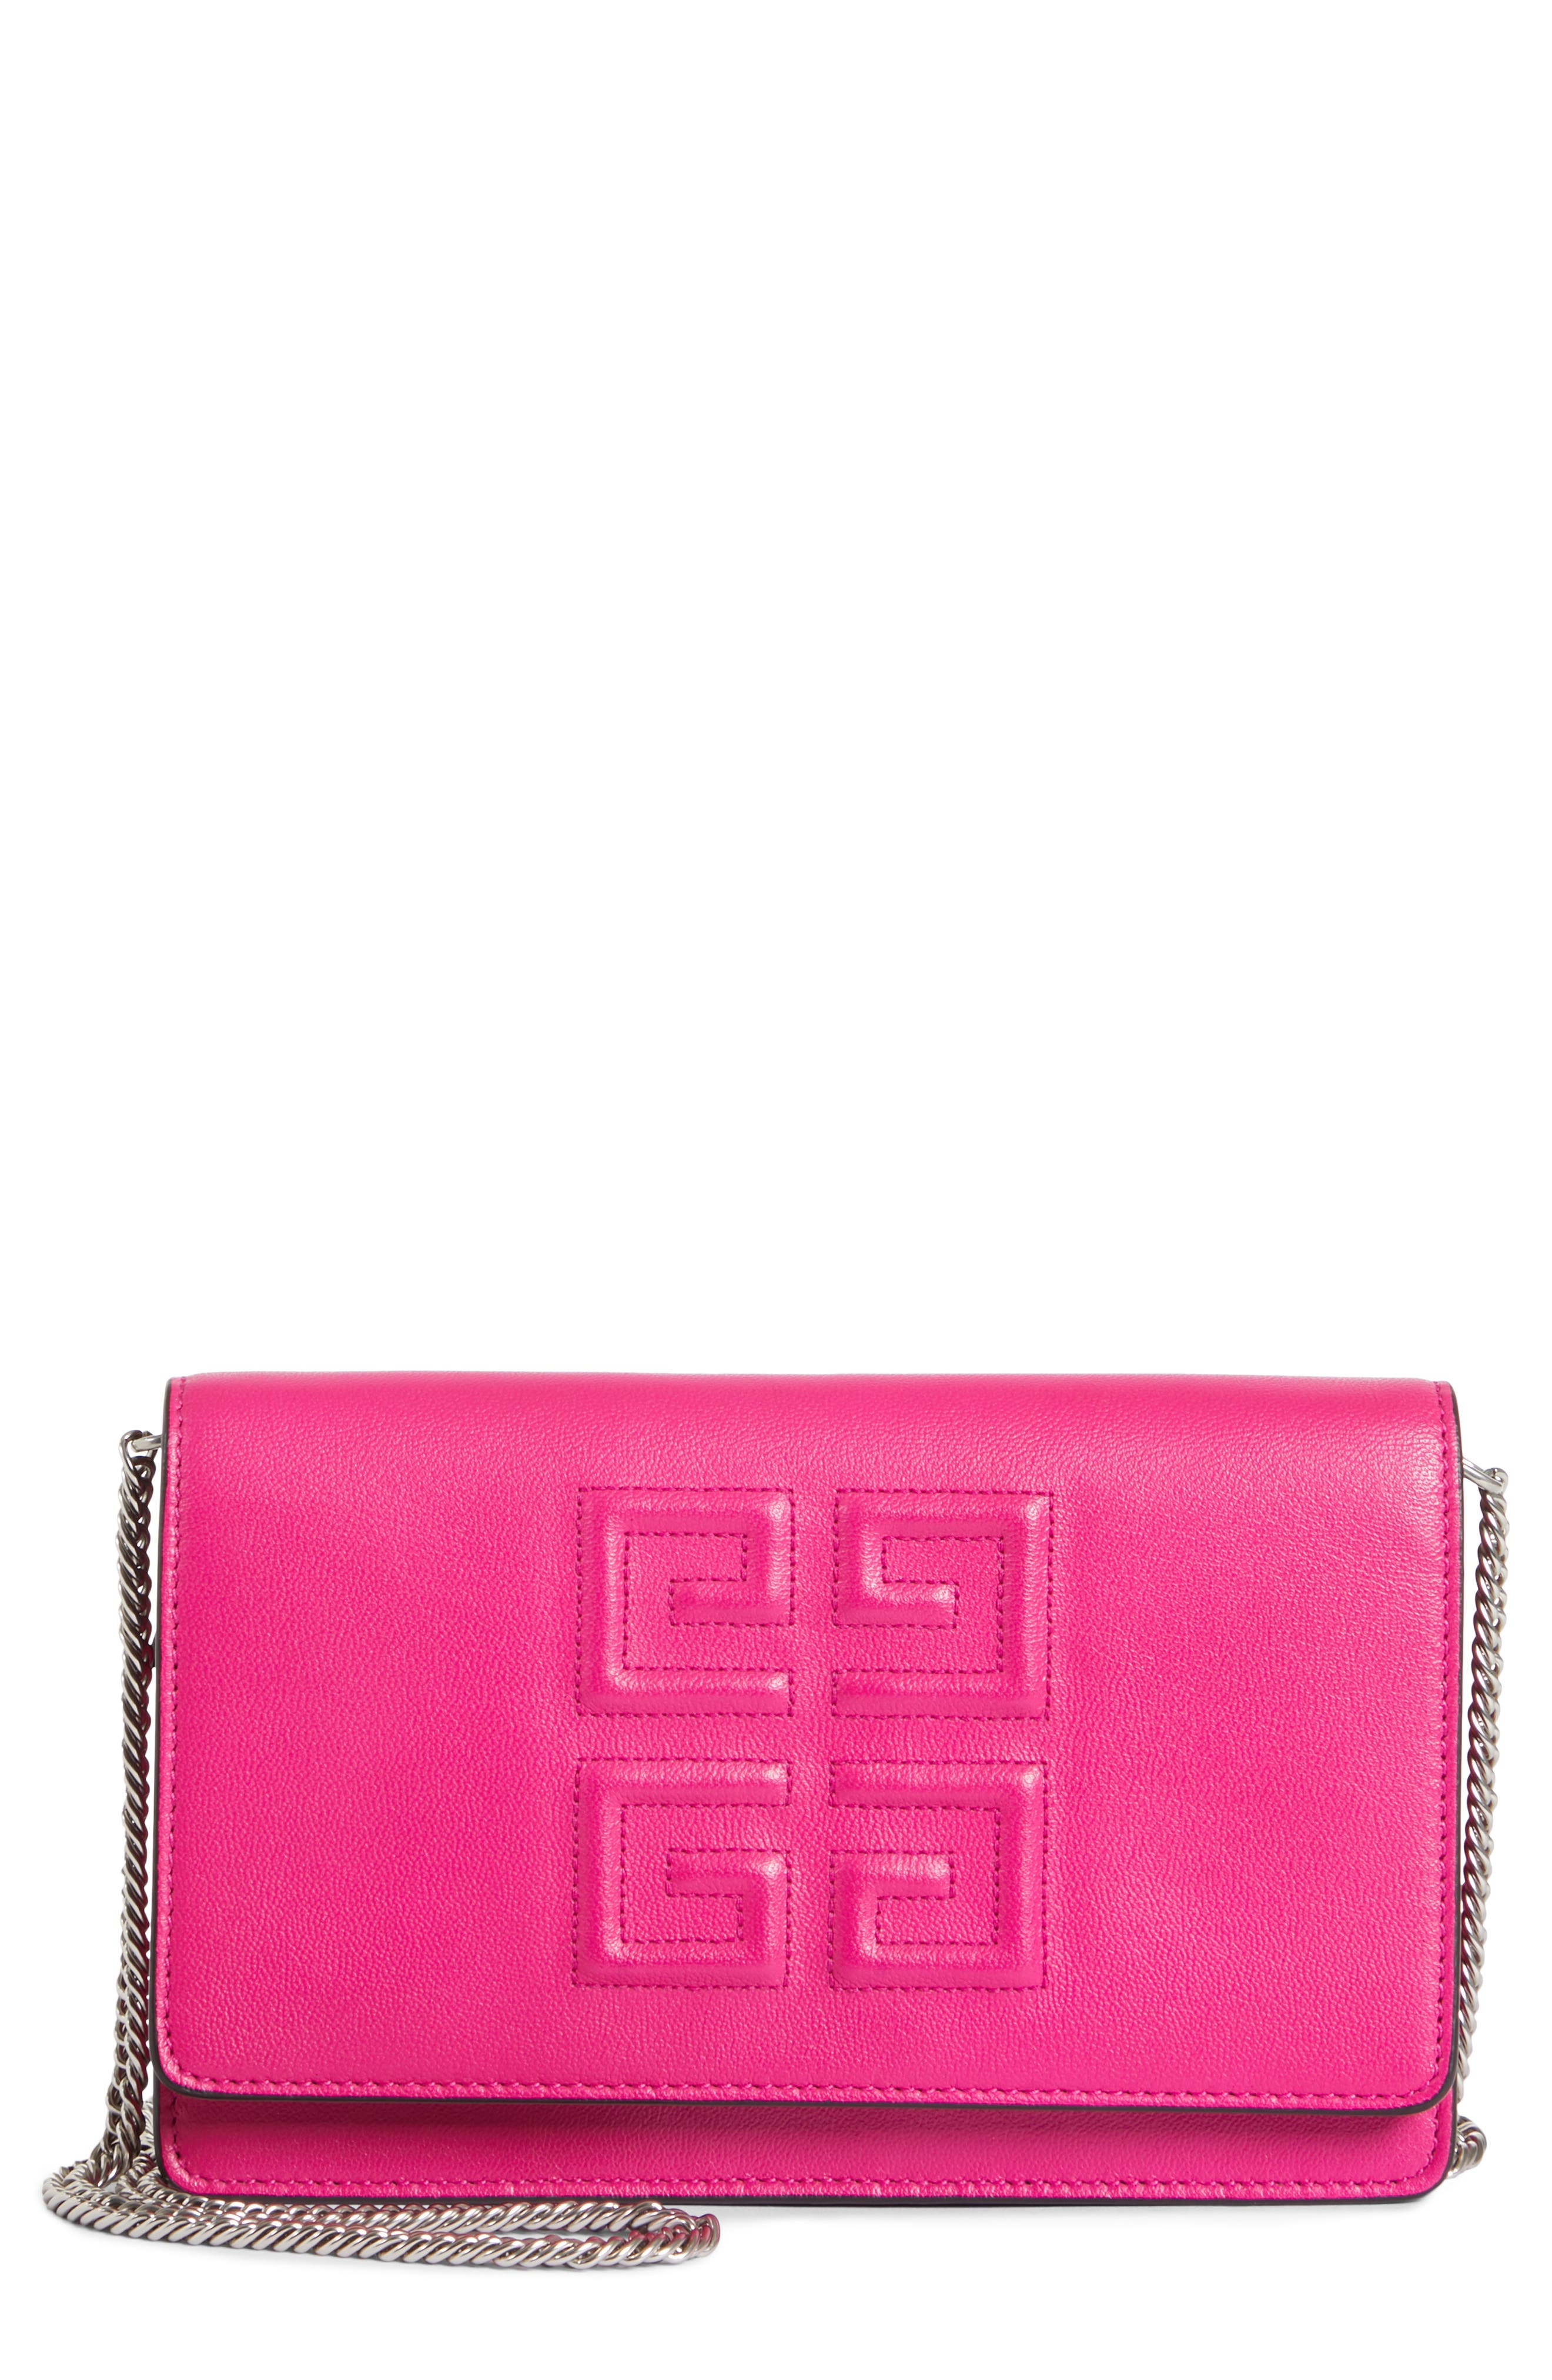 GIVENCHY, Embossed Emblem Wallet on a Chain, Main thumbnail 1, color, CYCLAMEN